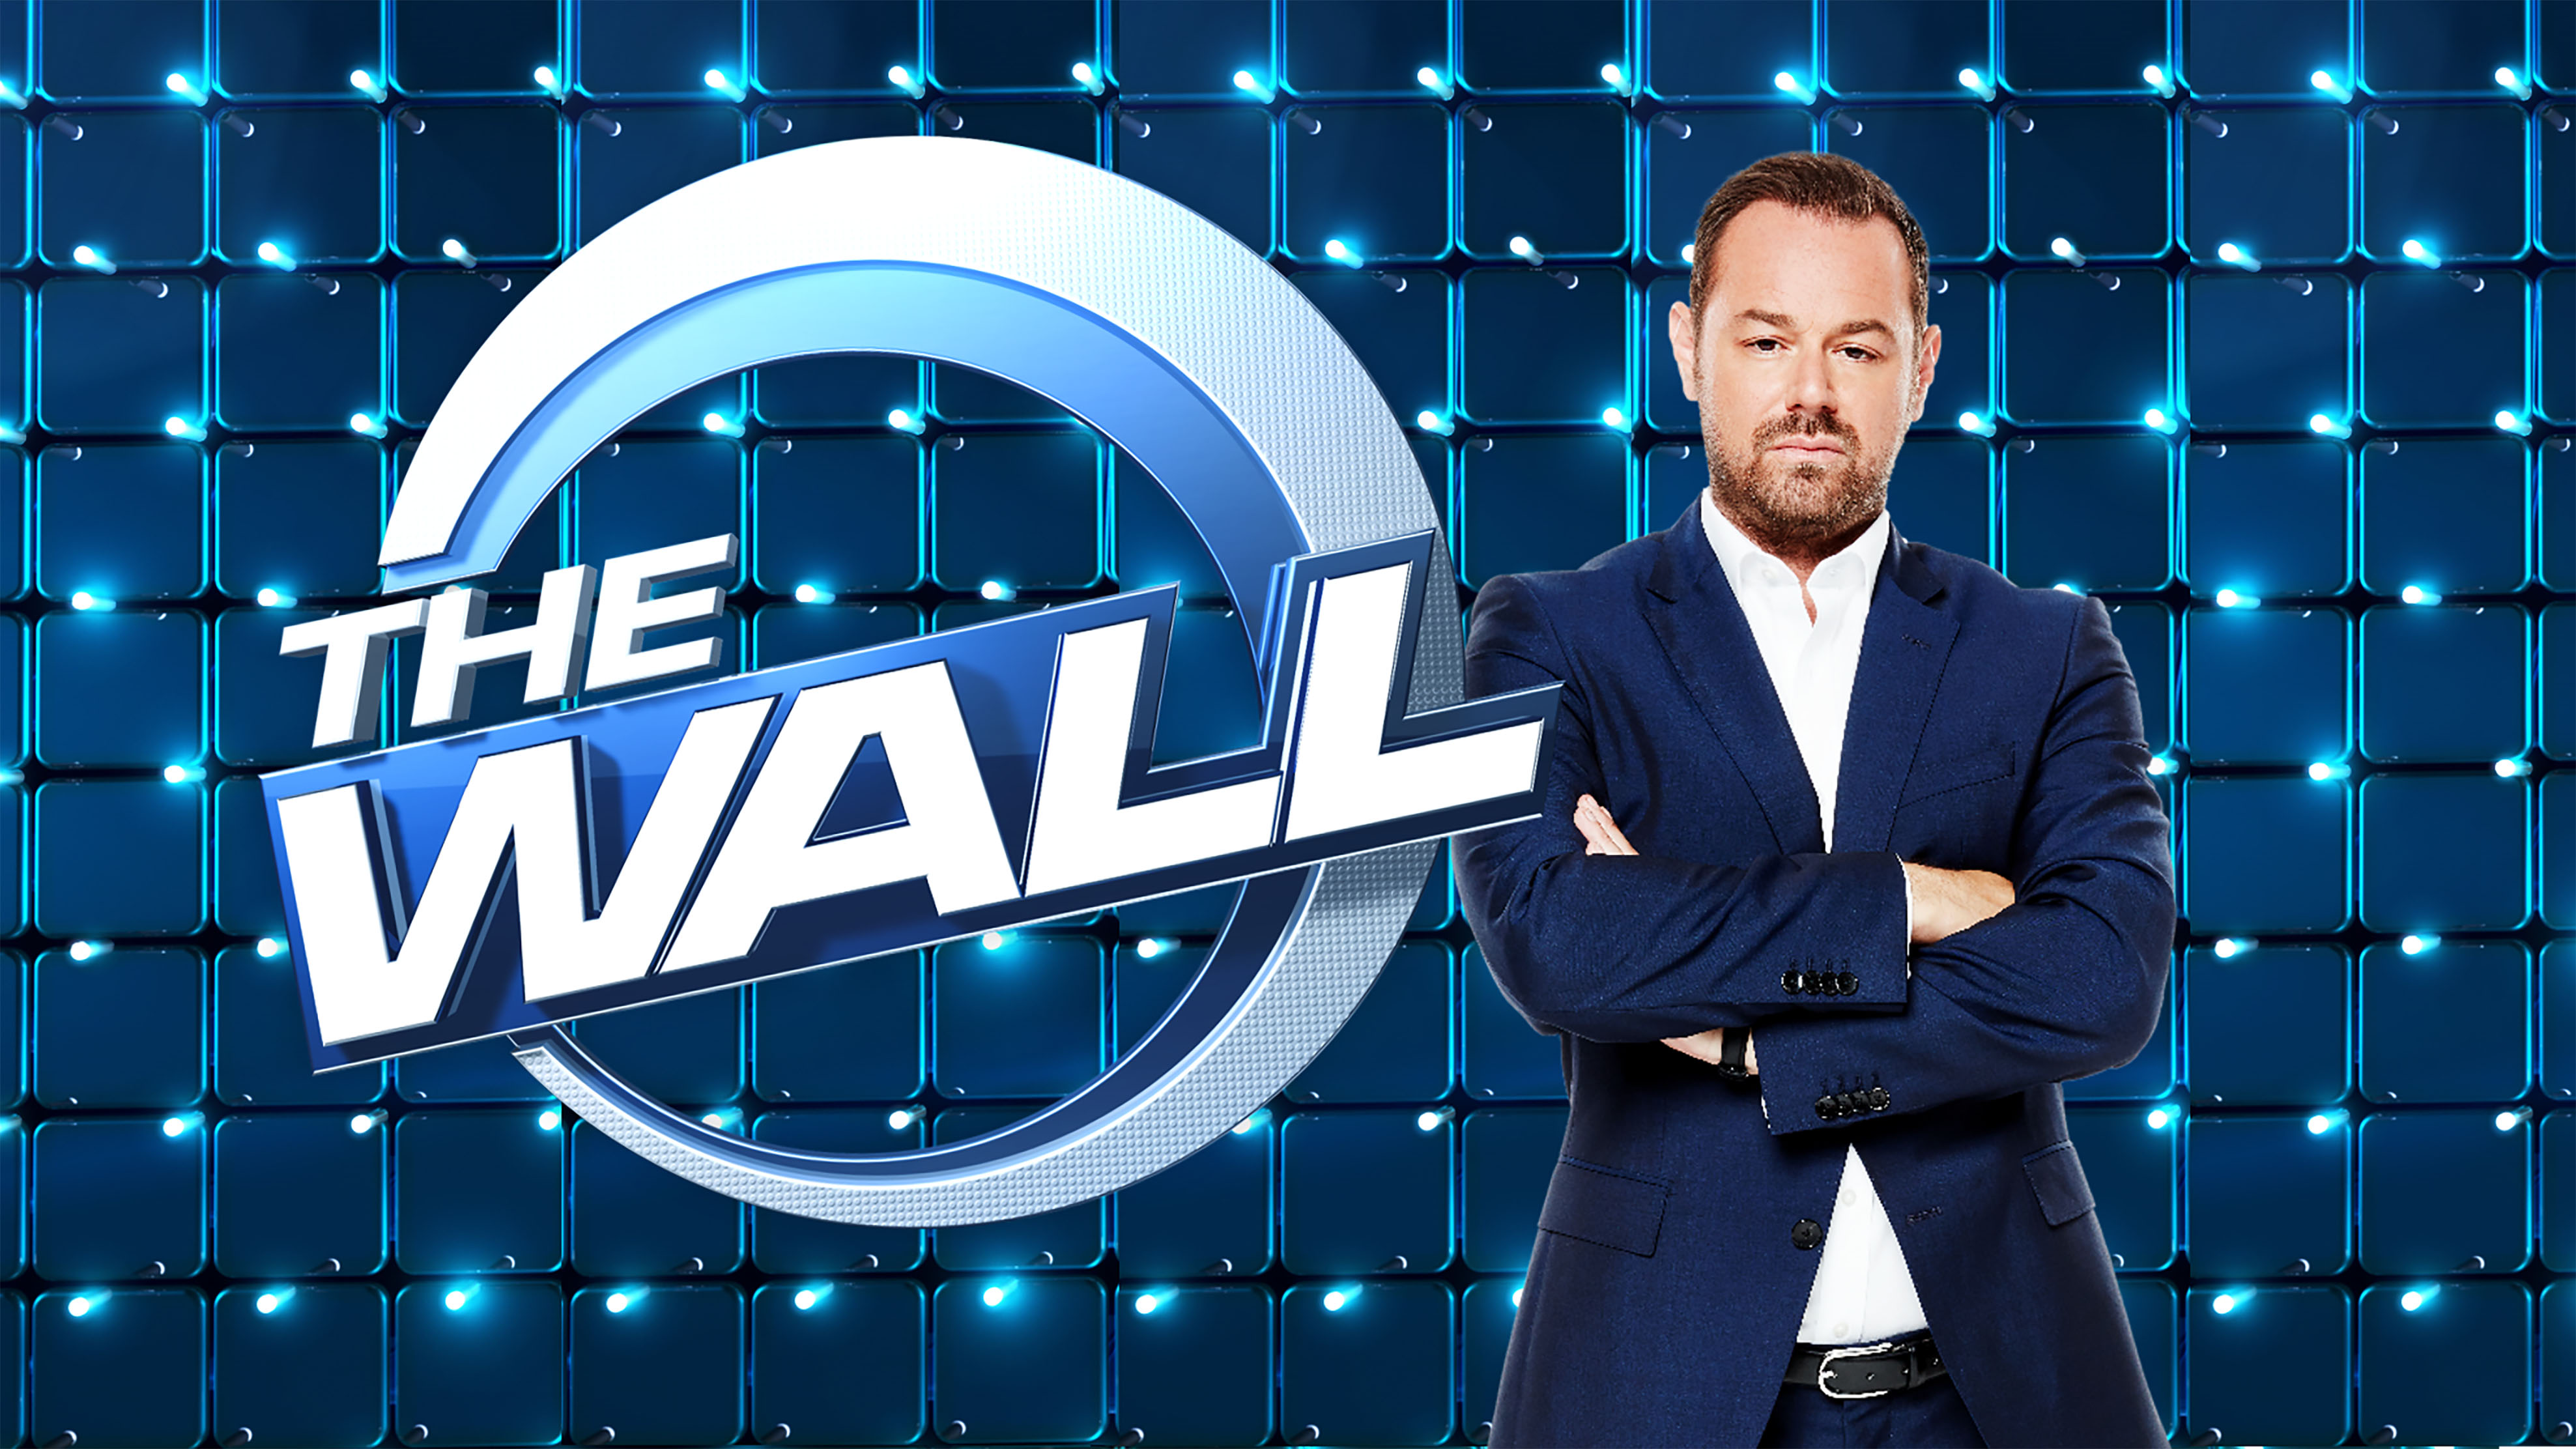 Danny Dyer to host new primetime gameshow on Saturday night